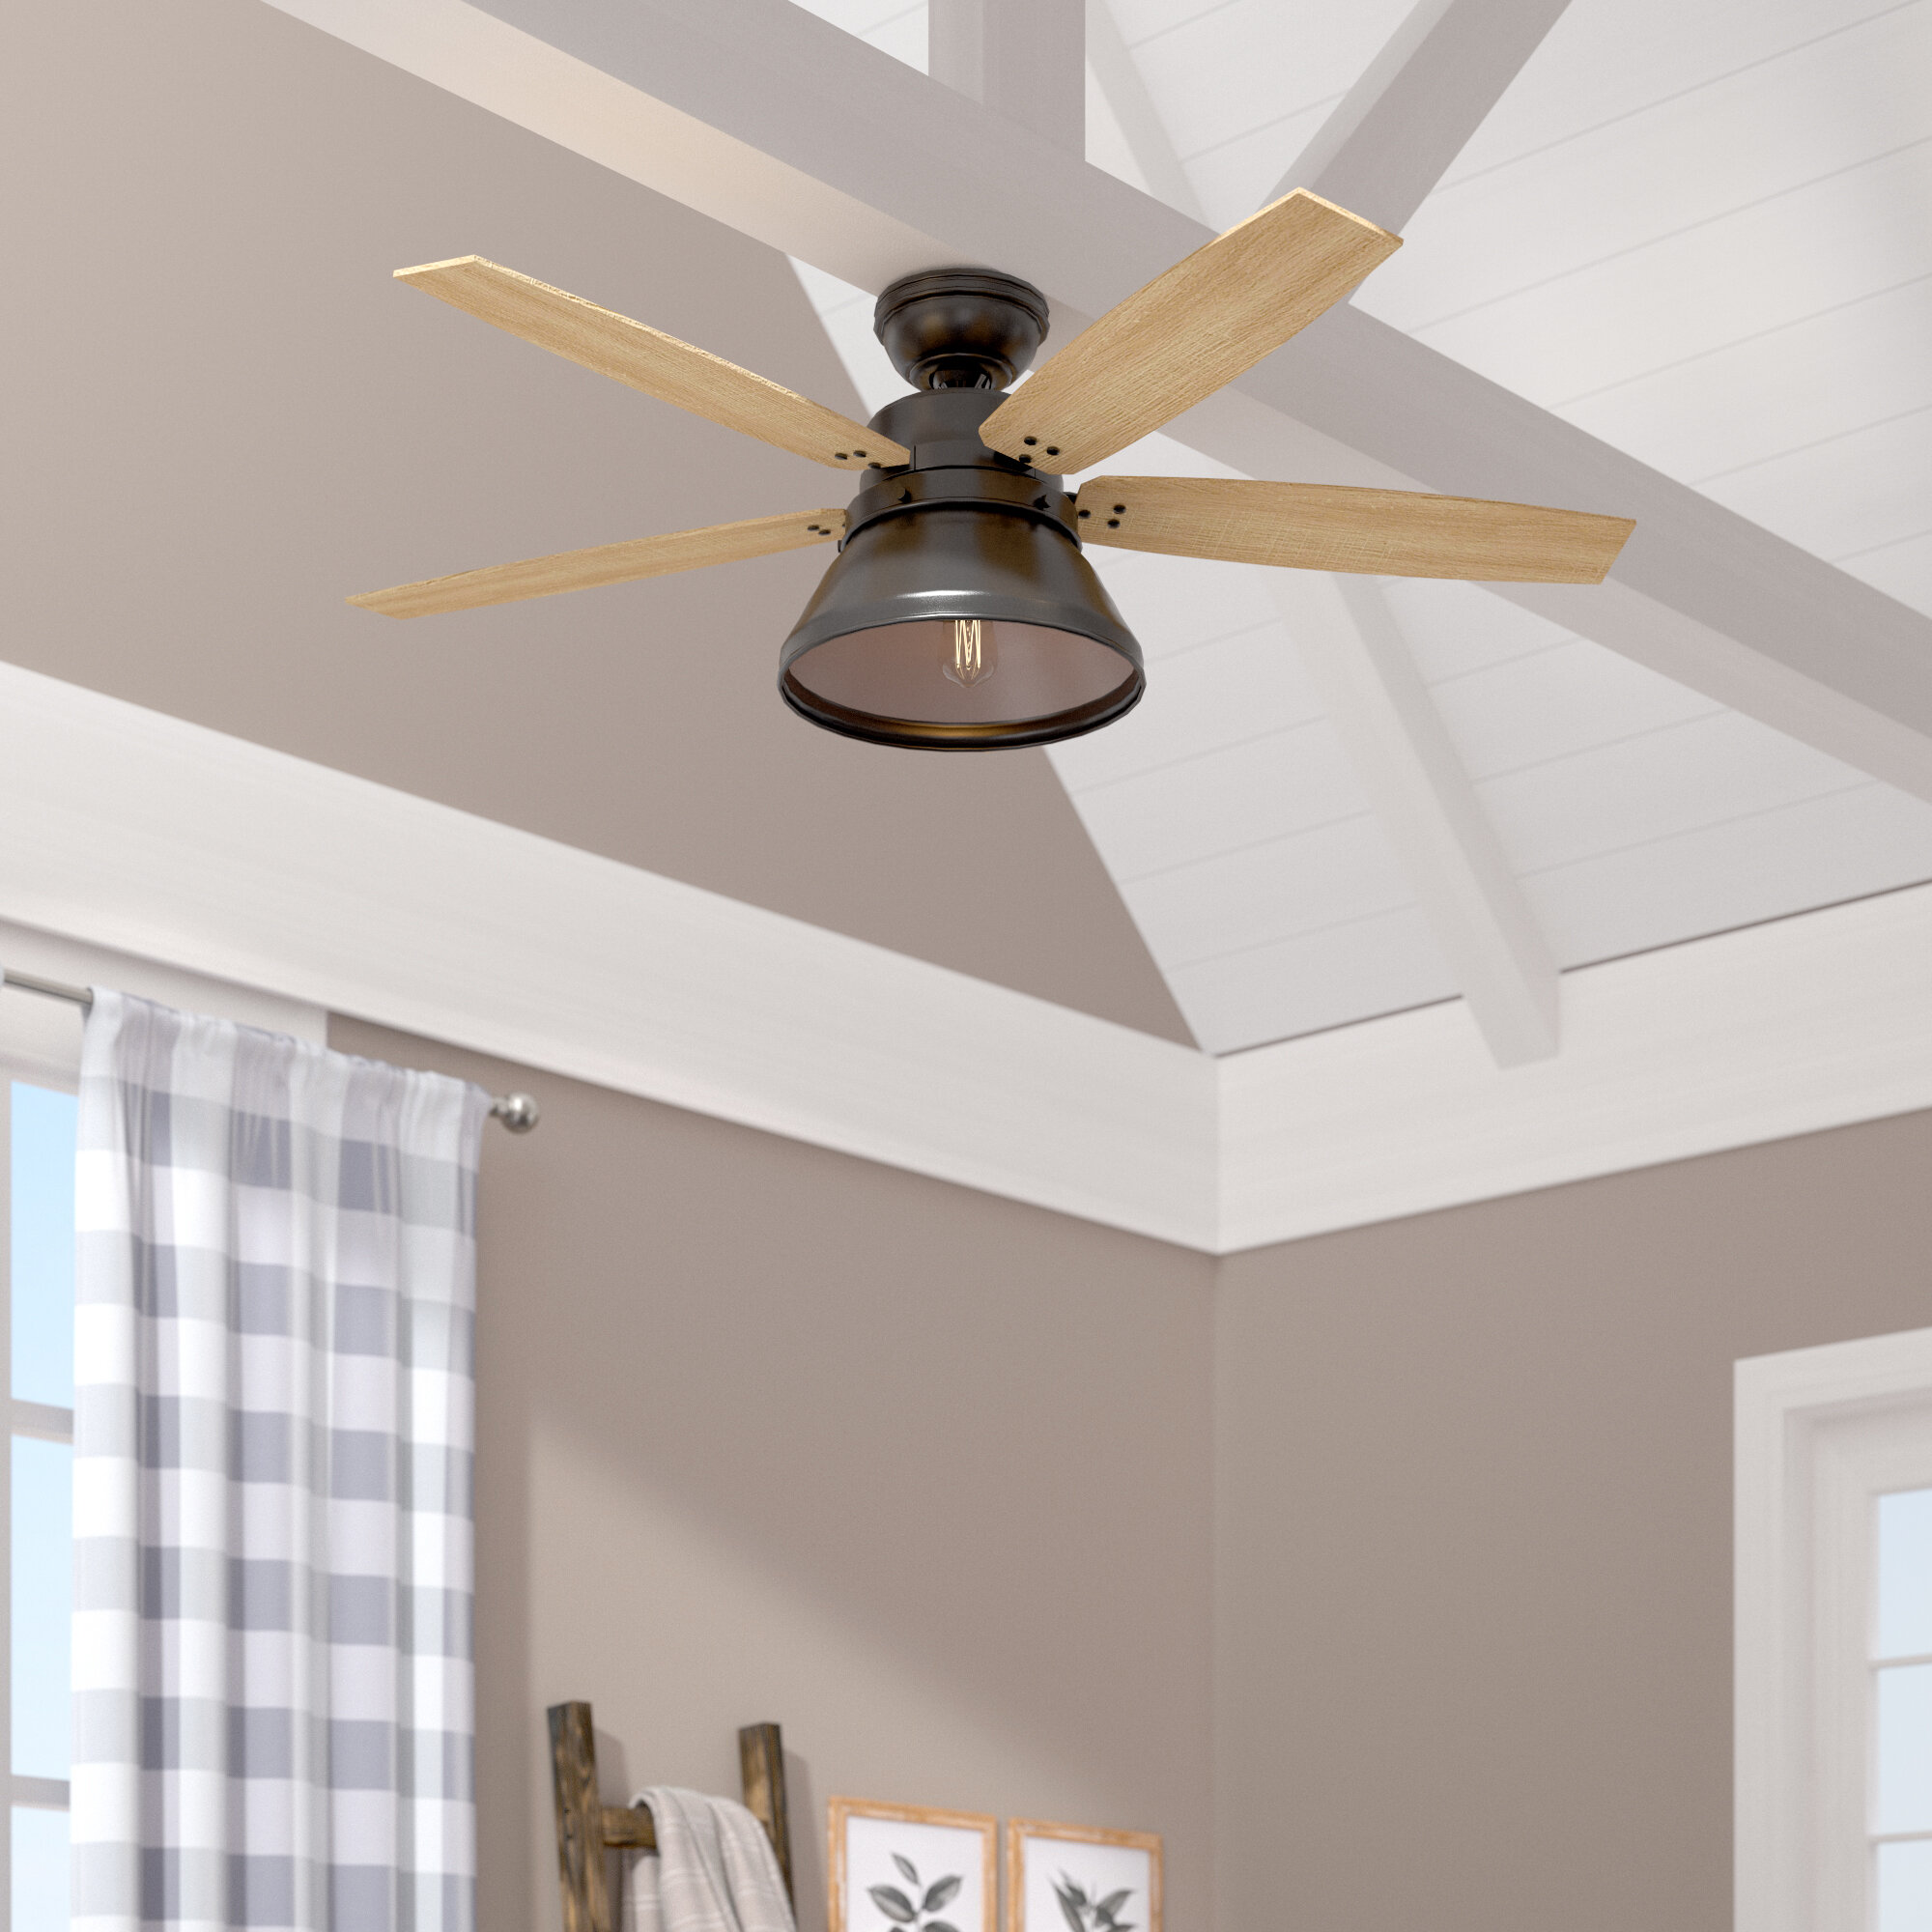 Hunter Fan 52 Beech Hollow 5 Blade Standard Ceiling Fan With Remote Control And Light Kit Included